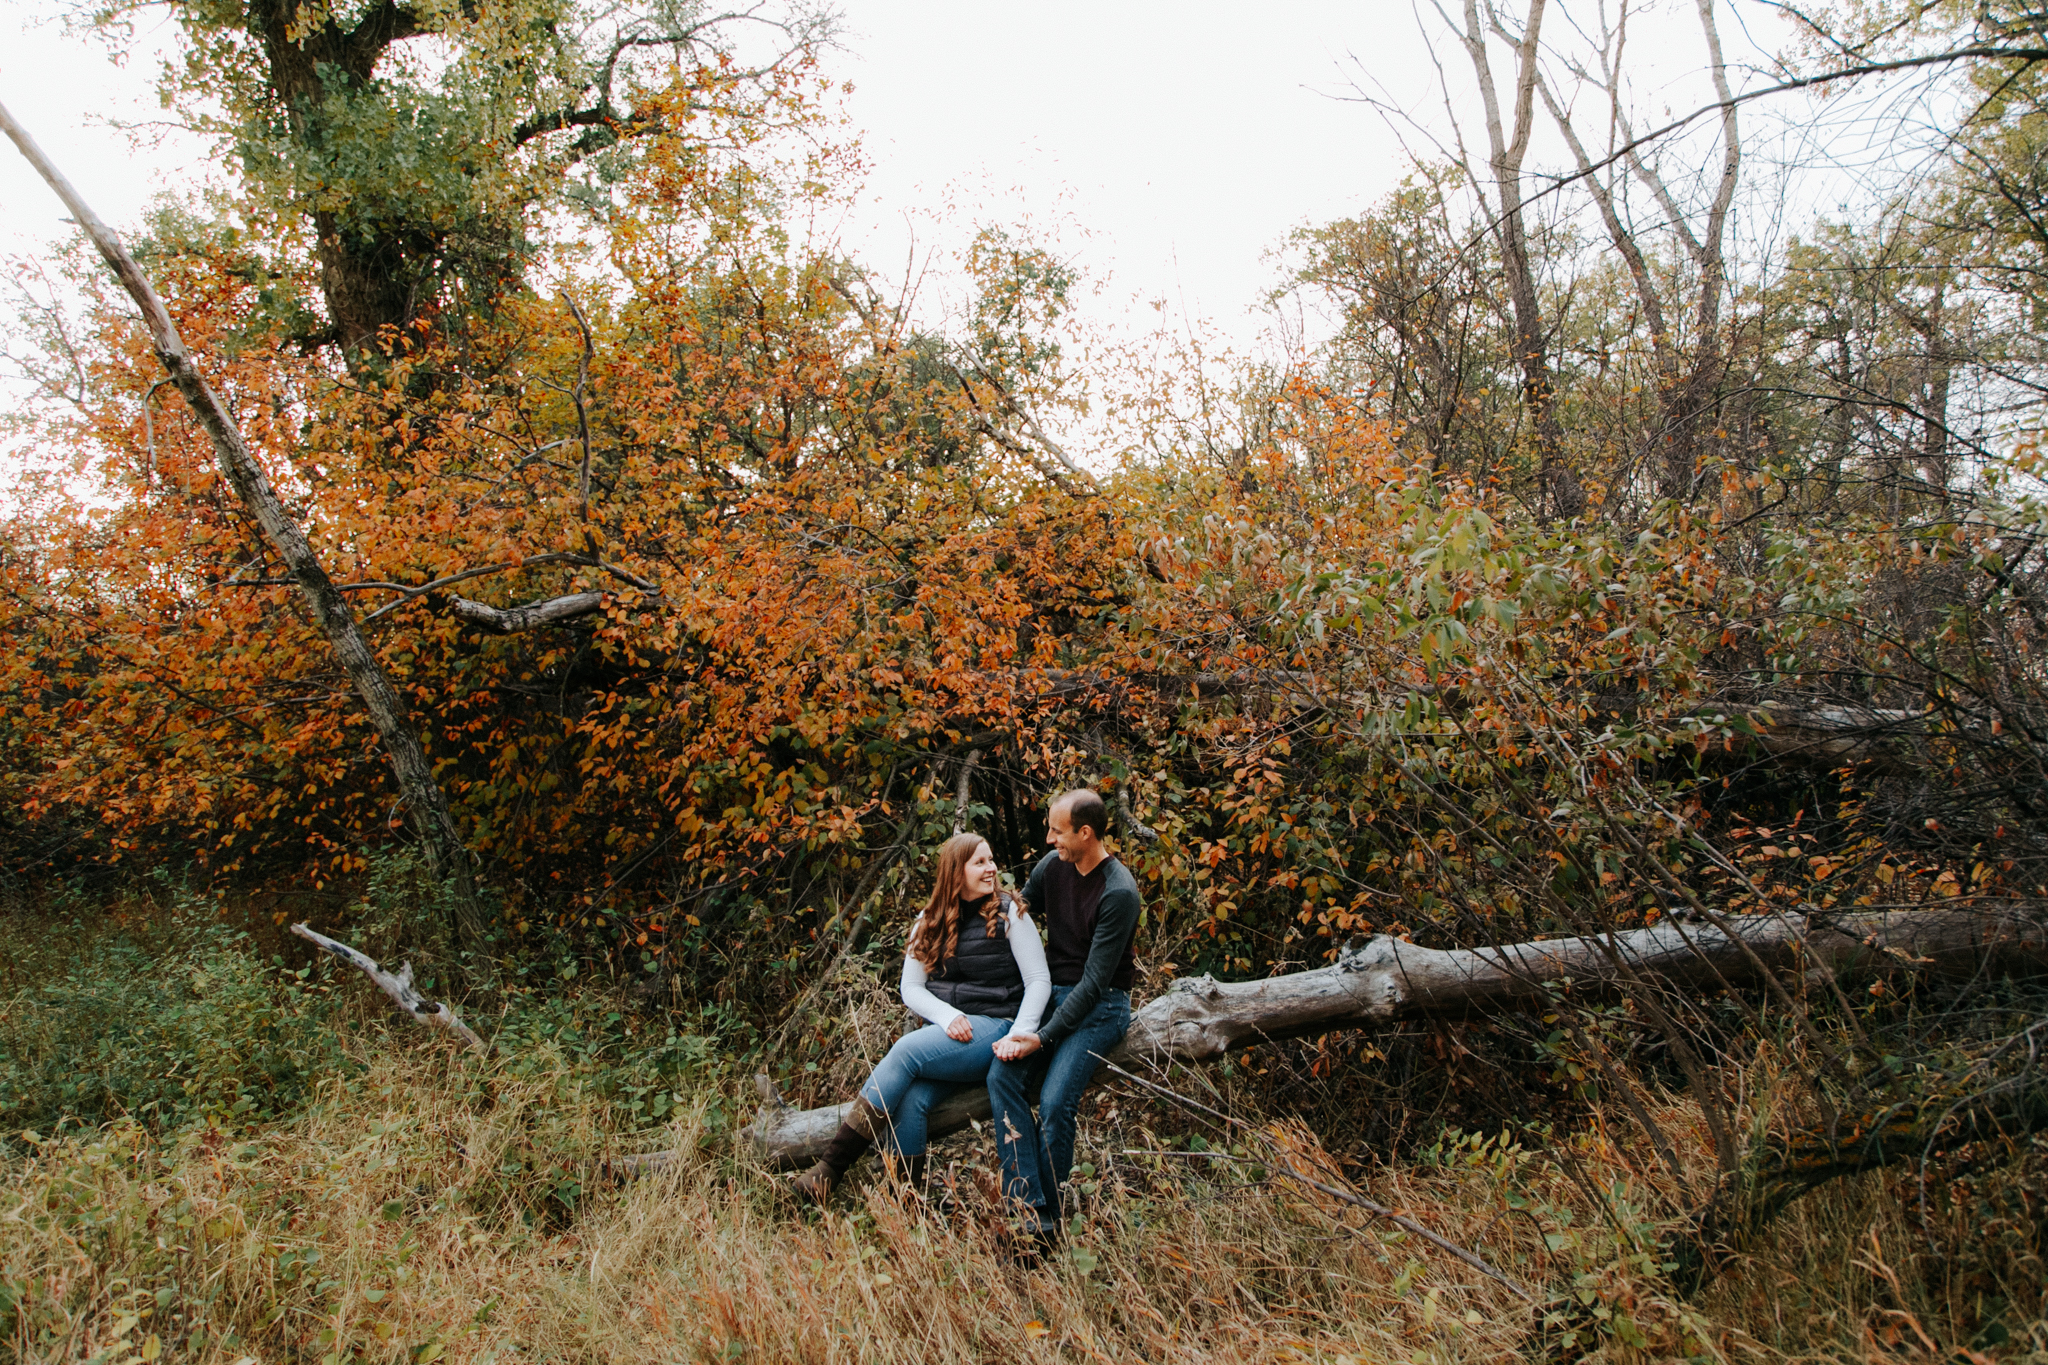 lethbridge-photographer-love-and-be-loved-photography-indian-battle-park-engagement-mike-carmel-photo-image-picture-31.jpg